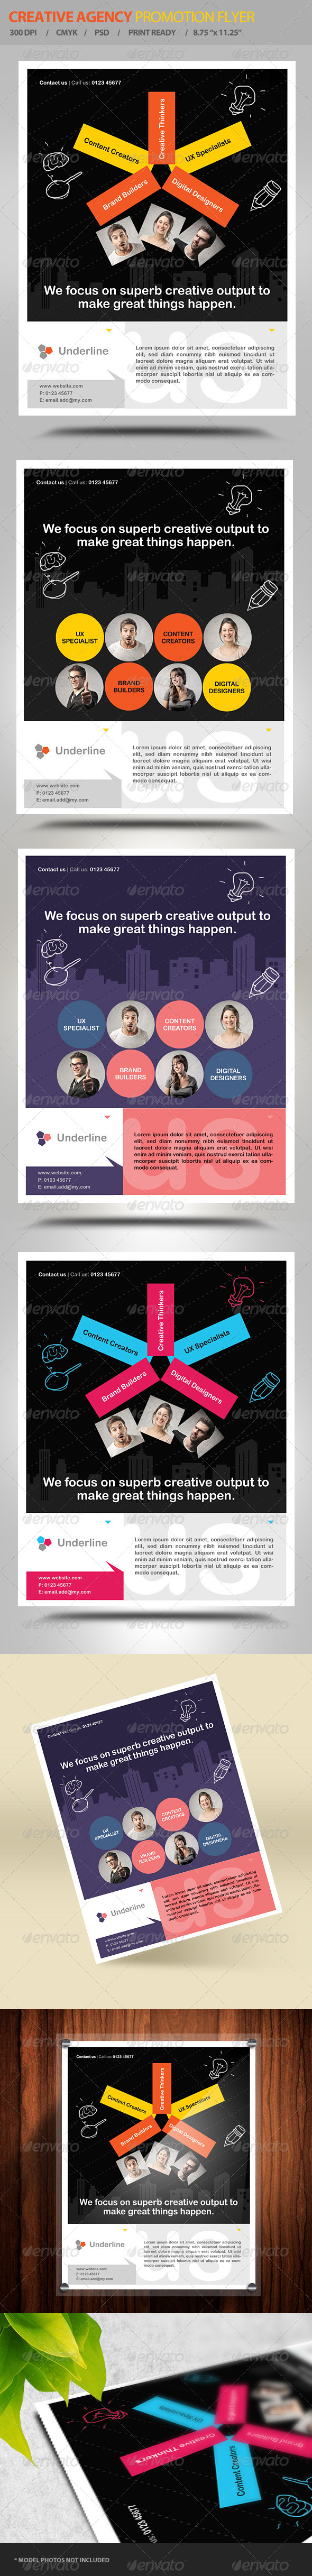 Creative Design Agency Flyer Vol2  - Corporate Flyers